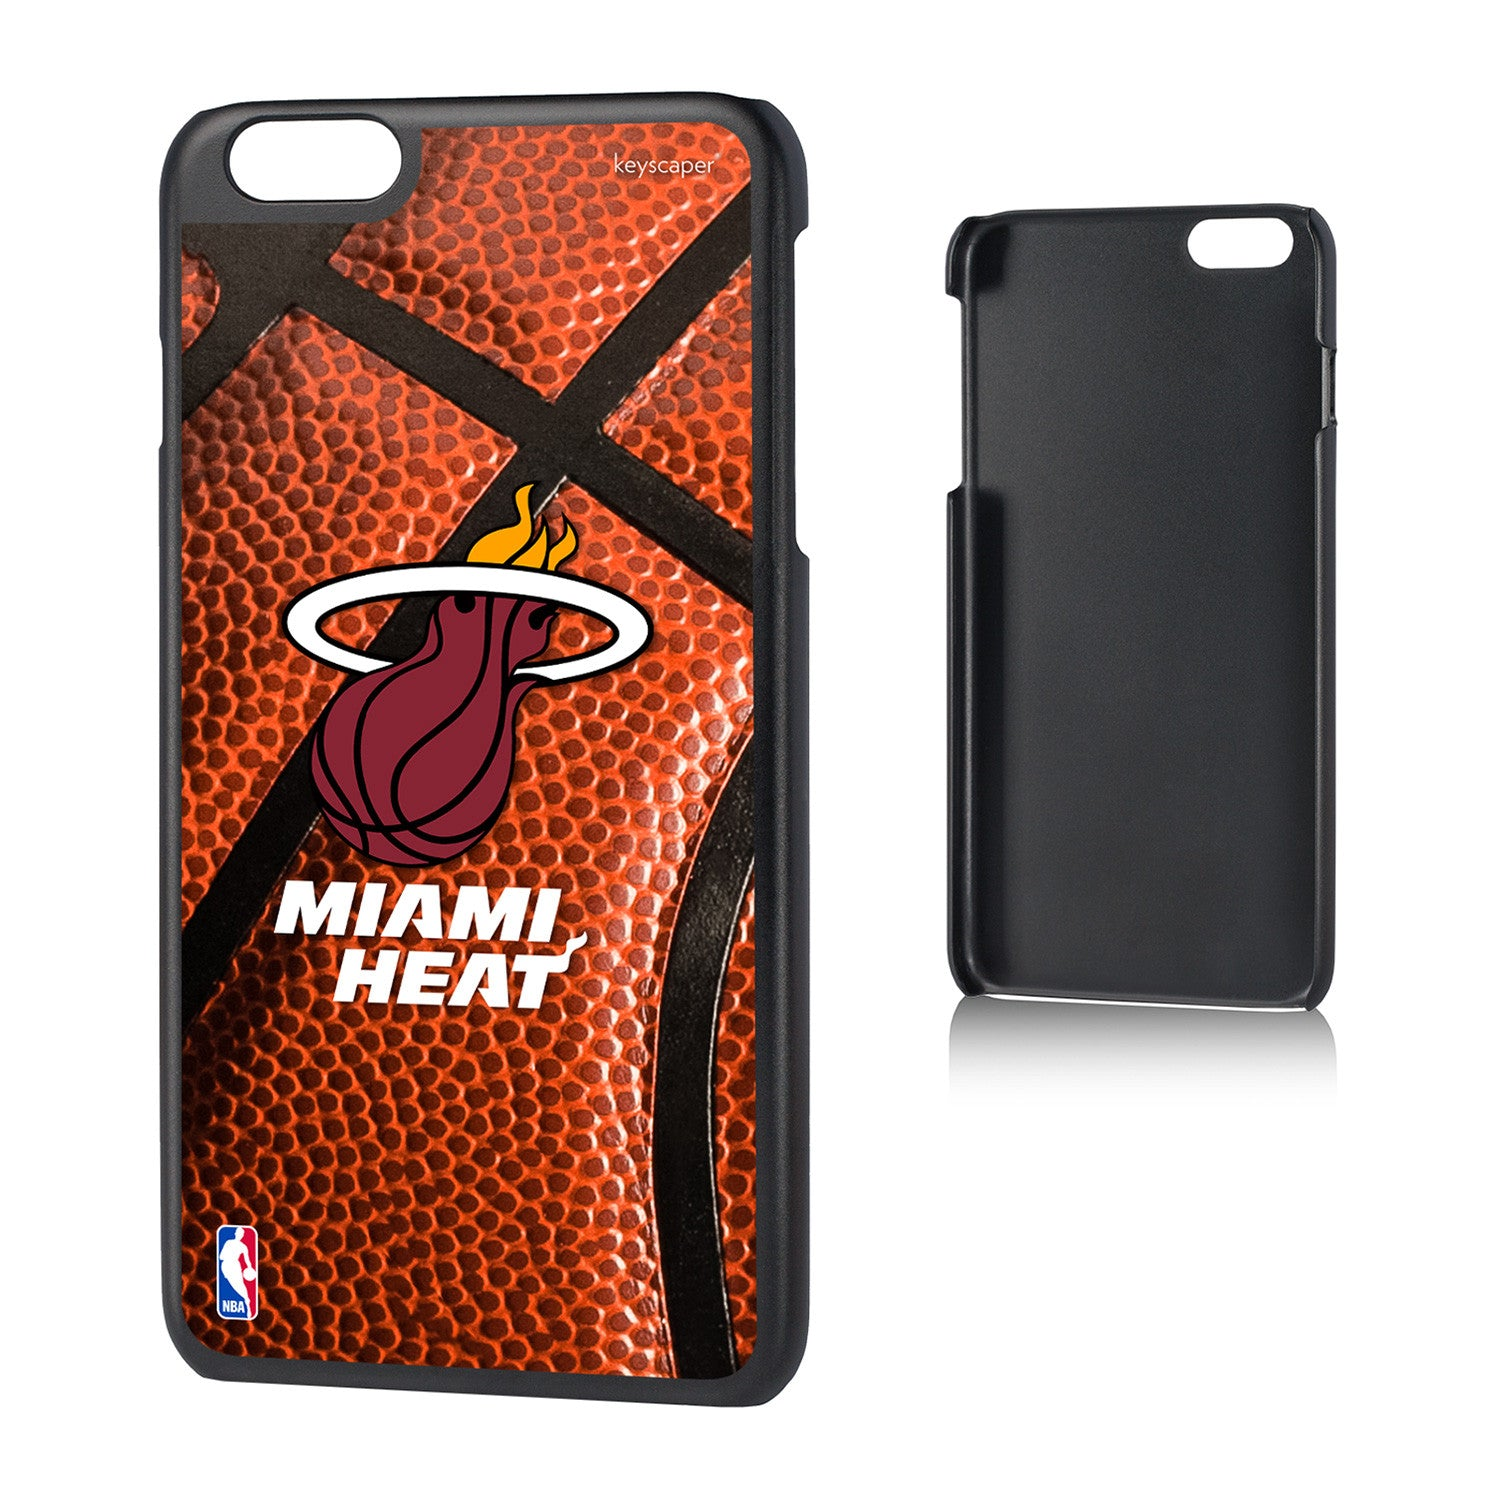 Miami Heat iPhone 6 6 7 & 7 Slim Case – Miami HEAT Store